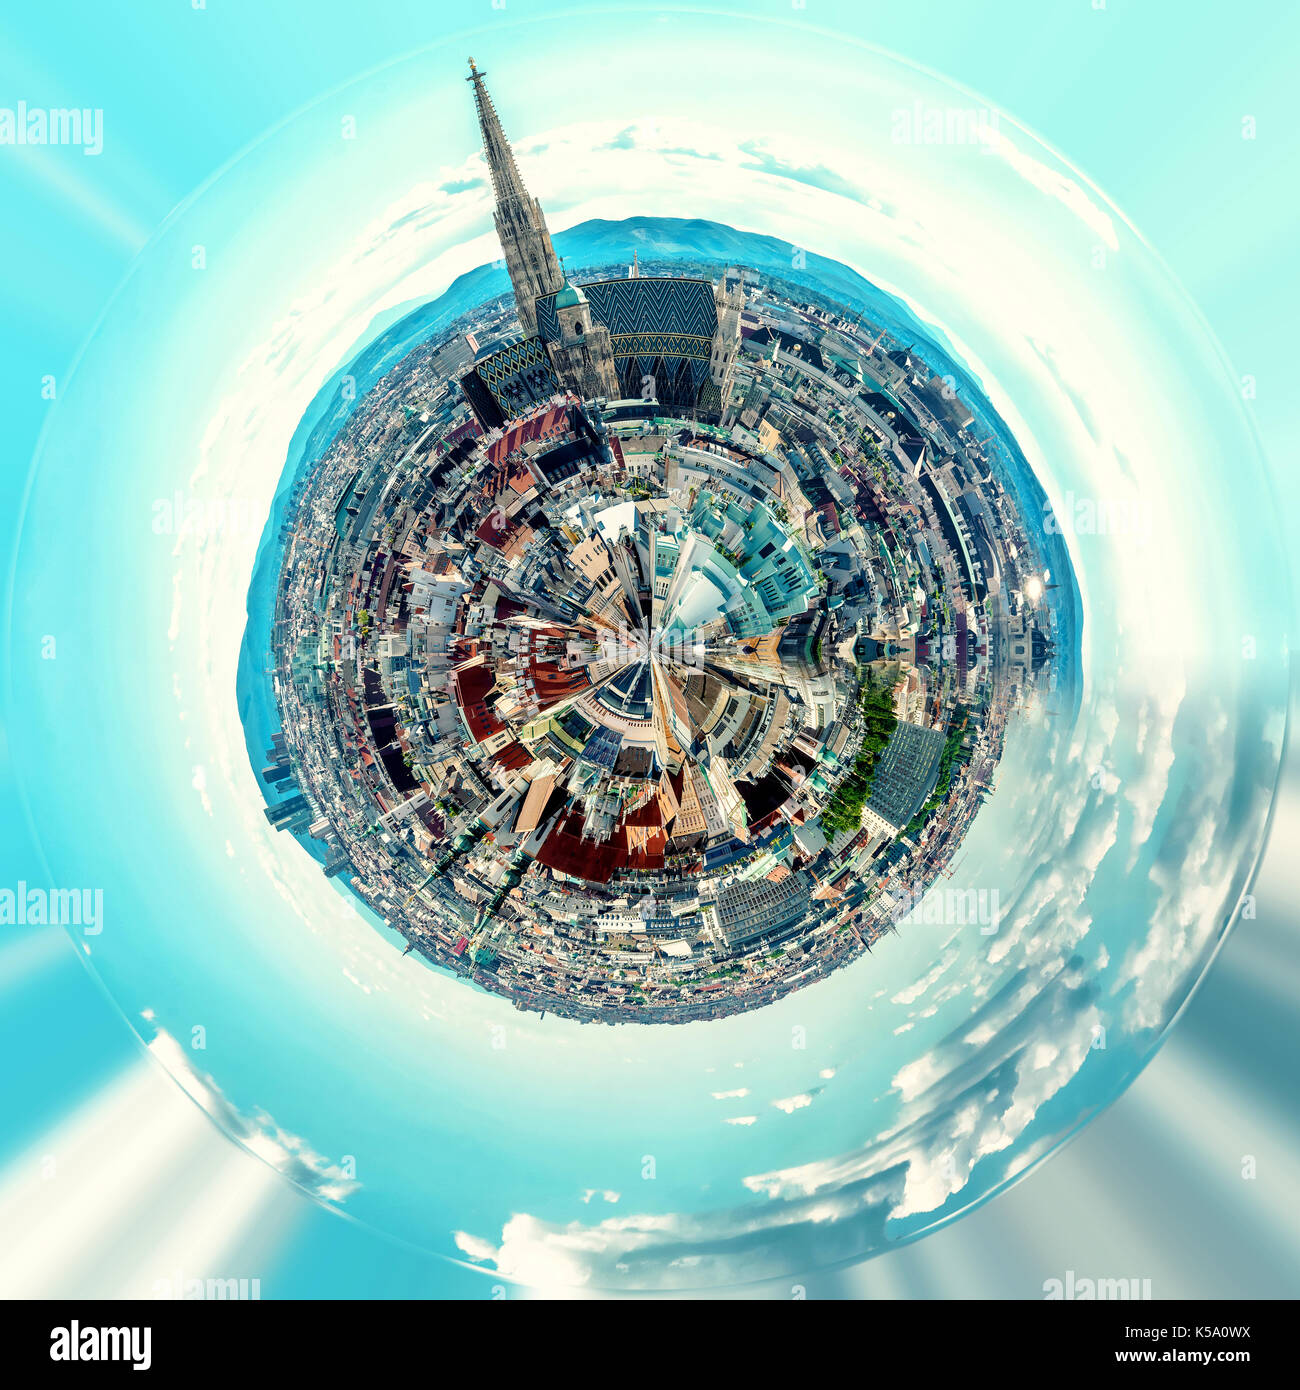 Little planet 360 degree sphere. Panoramic view of Vienna city. Austria - Stock Image